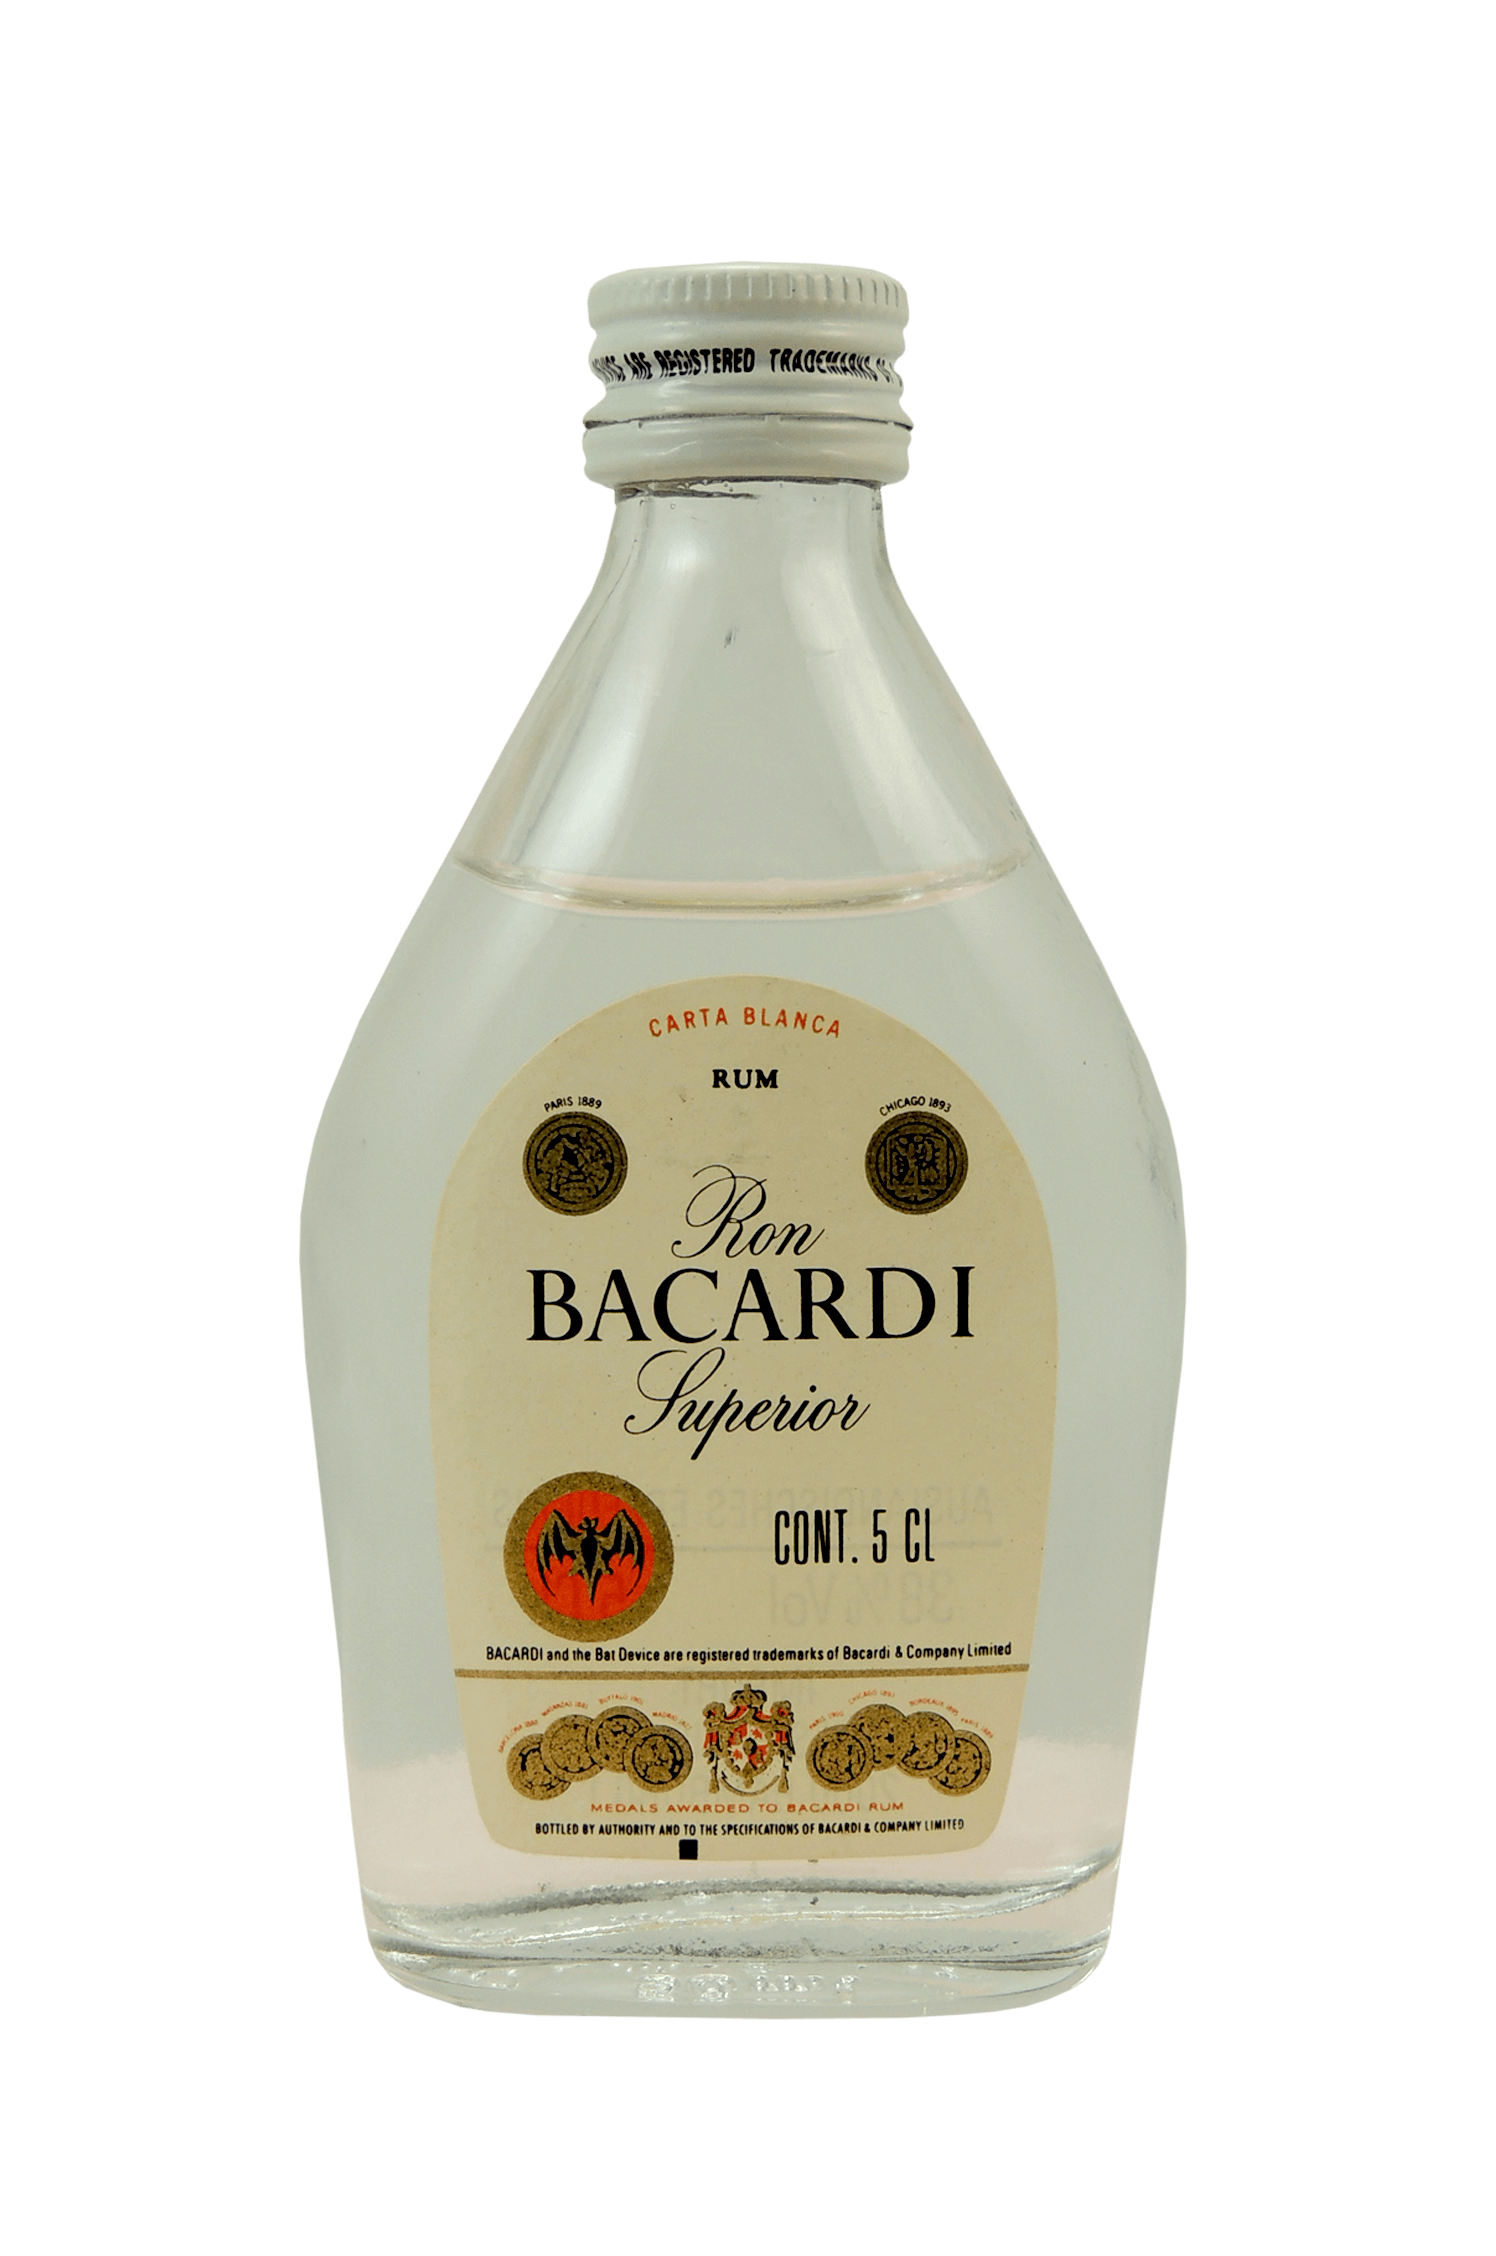 Ron Bacardi Superior